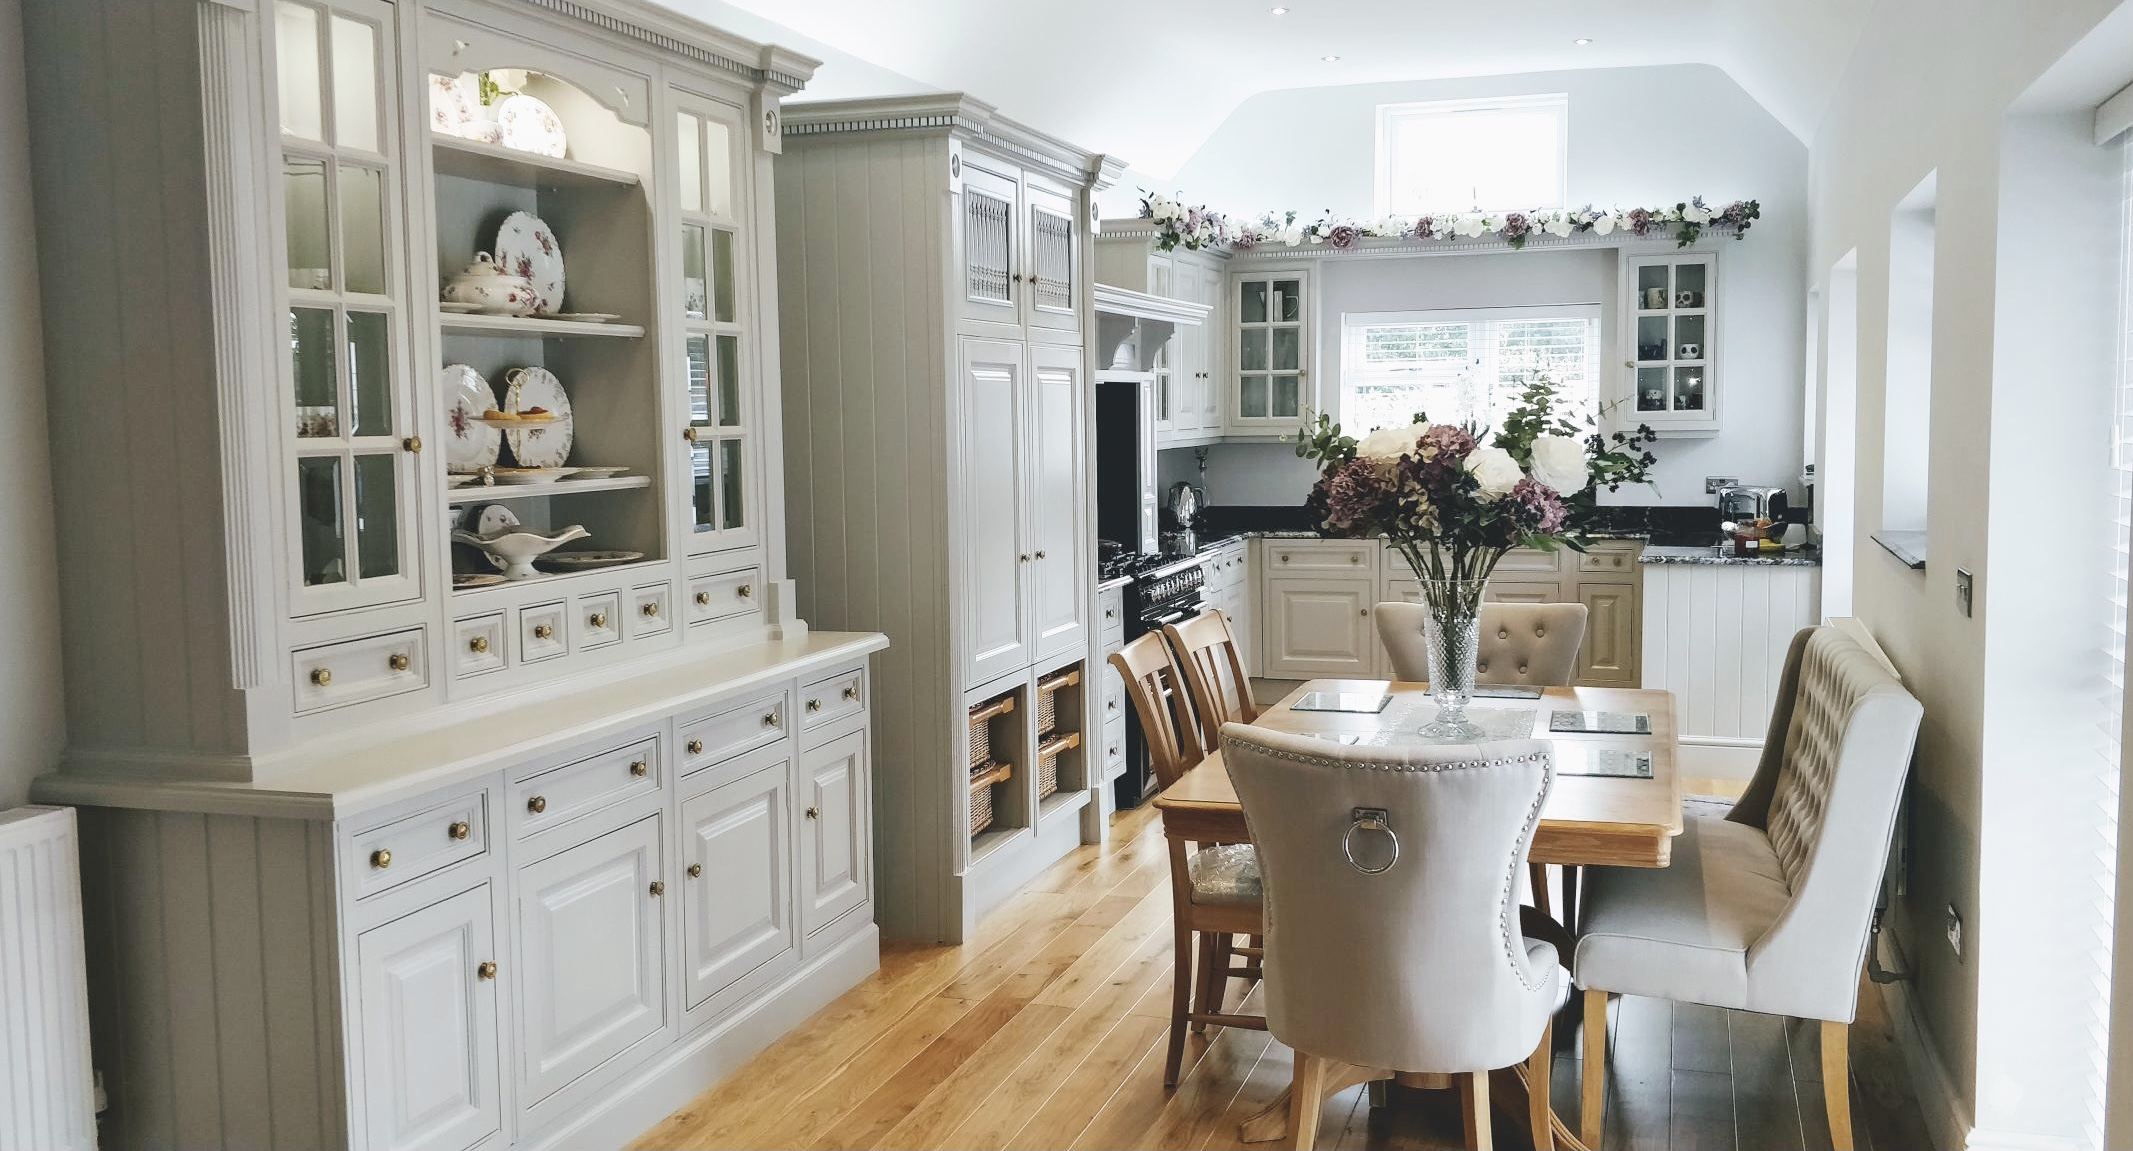 Hand painted Clive Christian kitchen painted in Little Greene French Grey